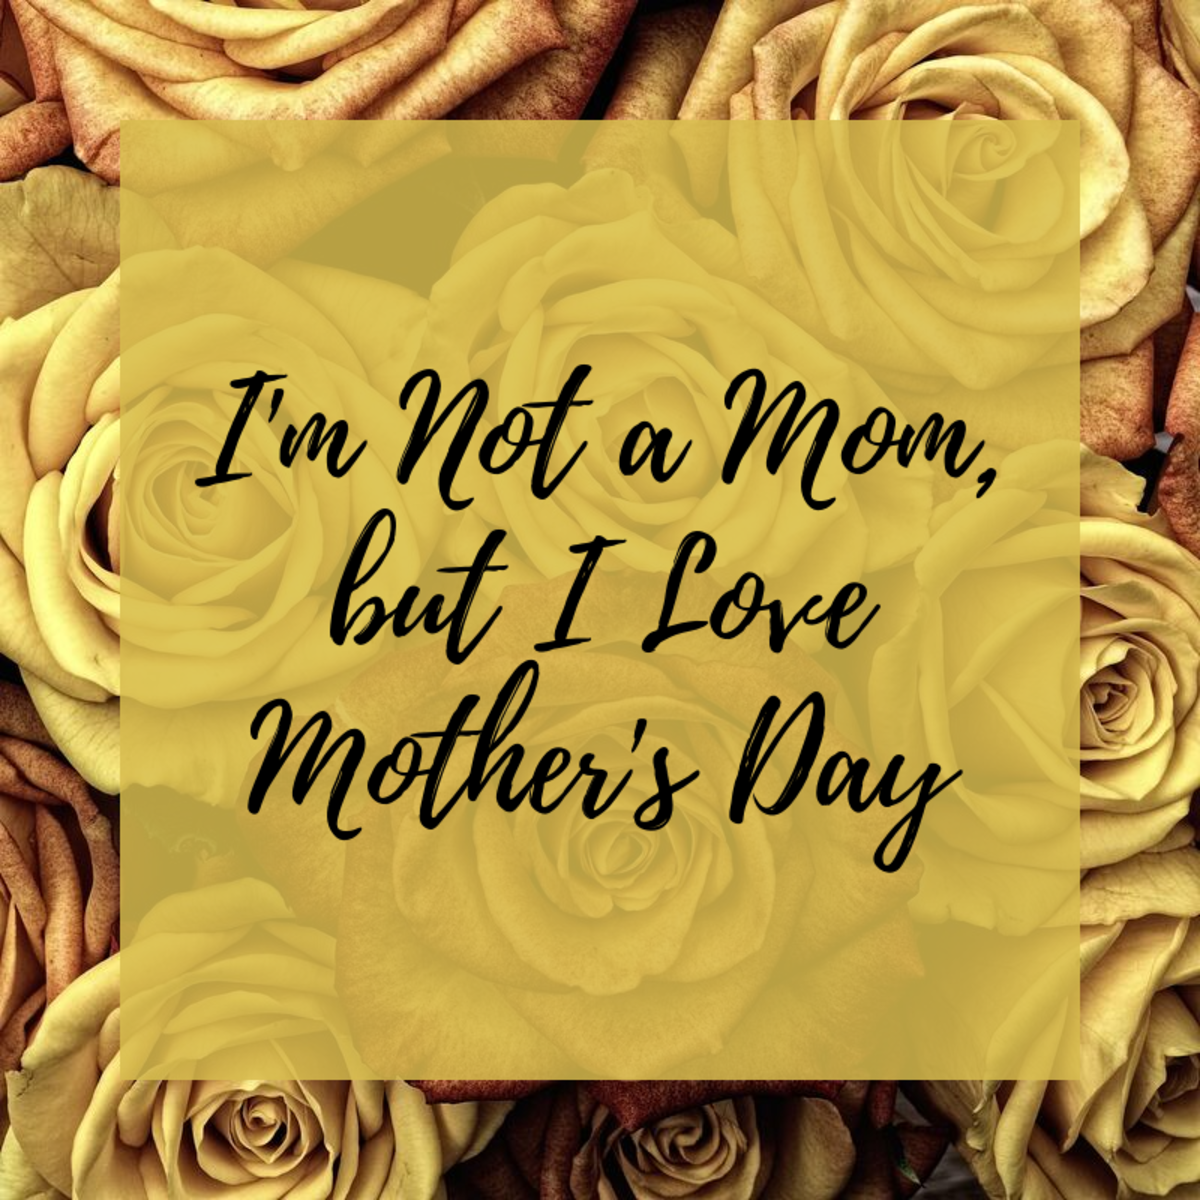 Mother's Day From the Perspective of Someone Who's Not a Mom